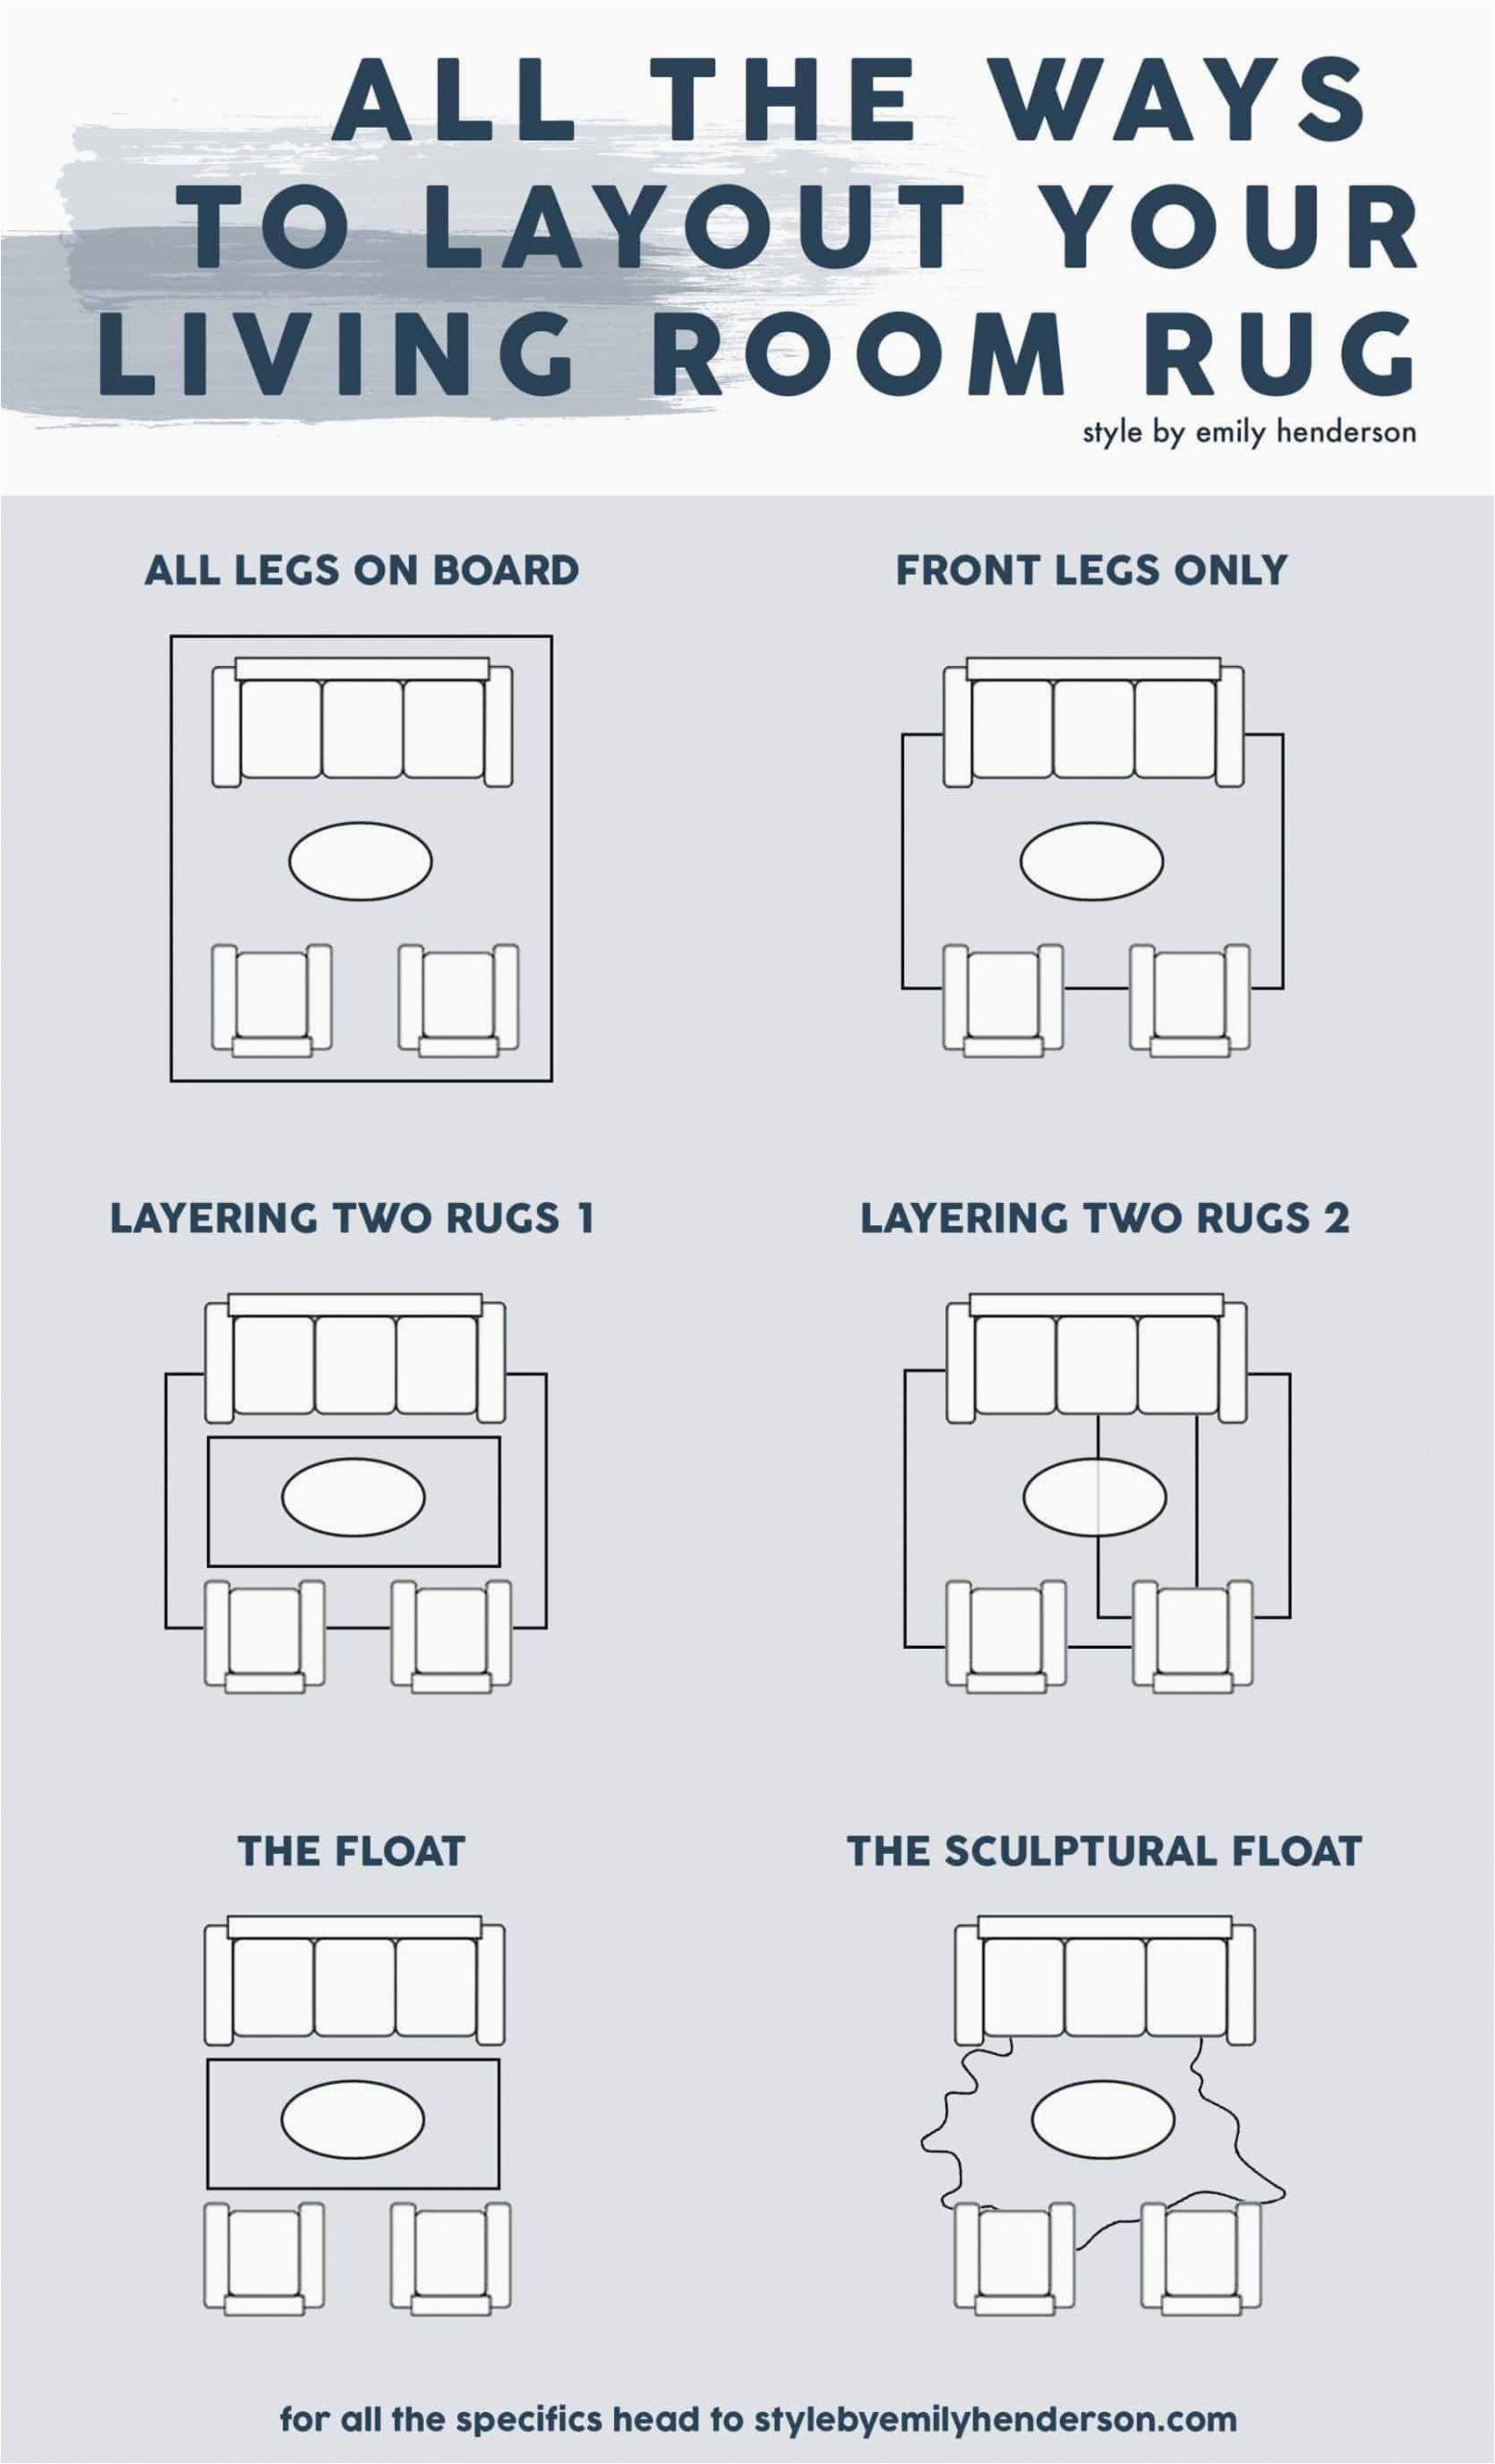 Choosing the Right Size area Rug How to Choose the Right Rug Size for Your Living Room 5